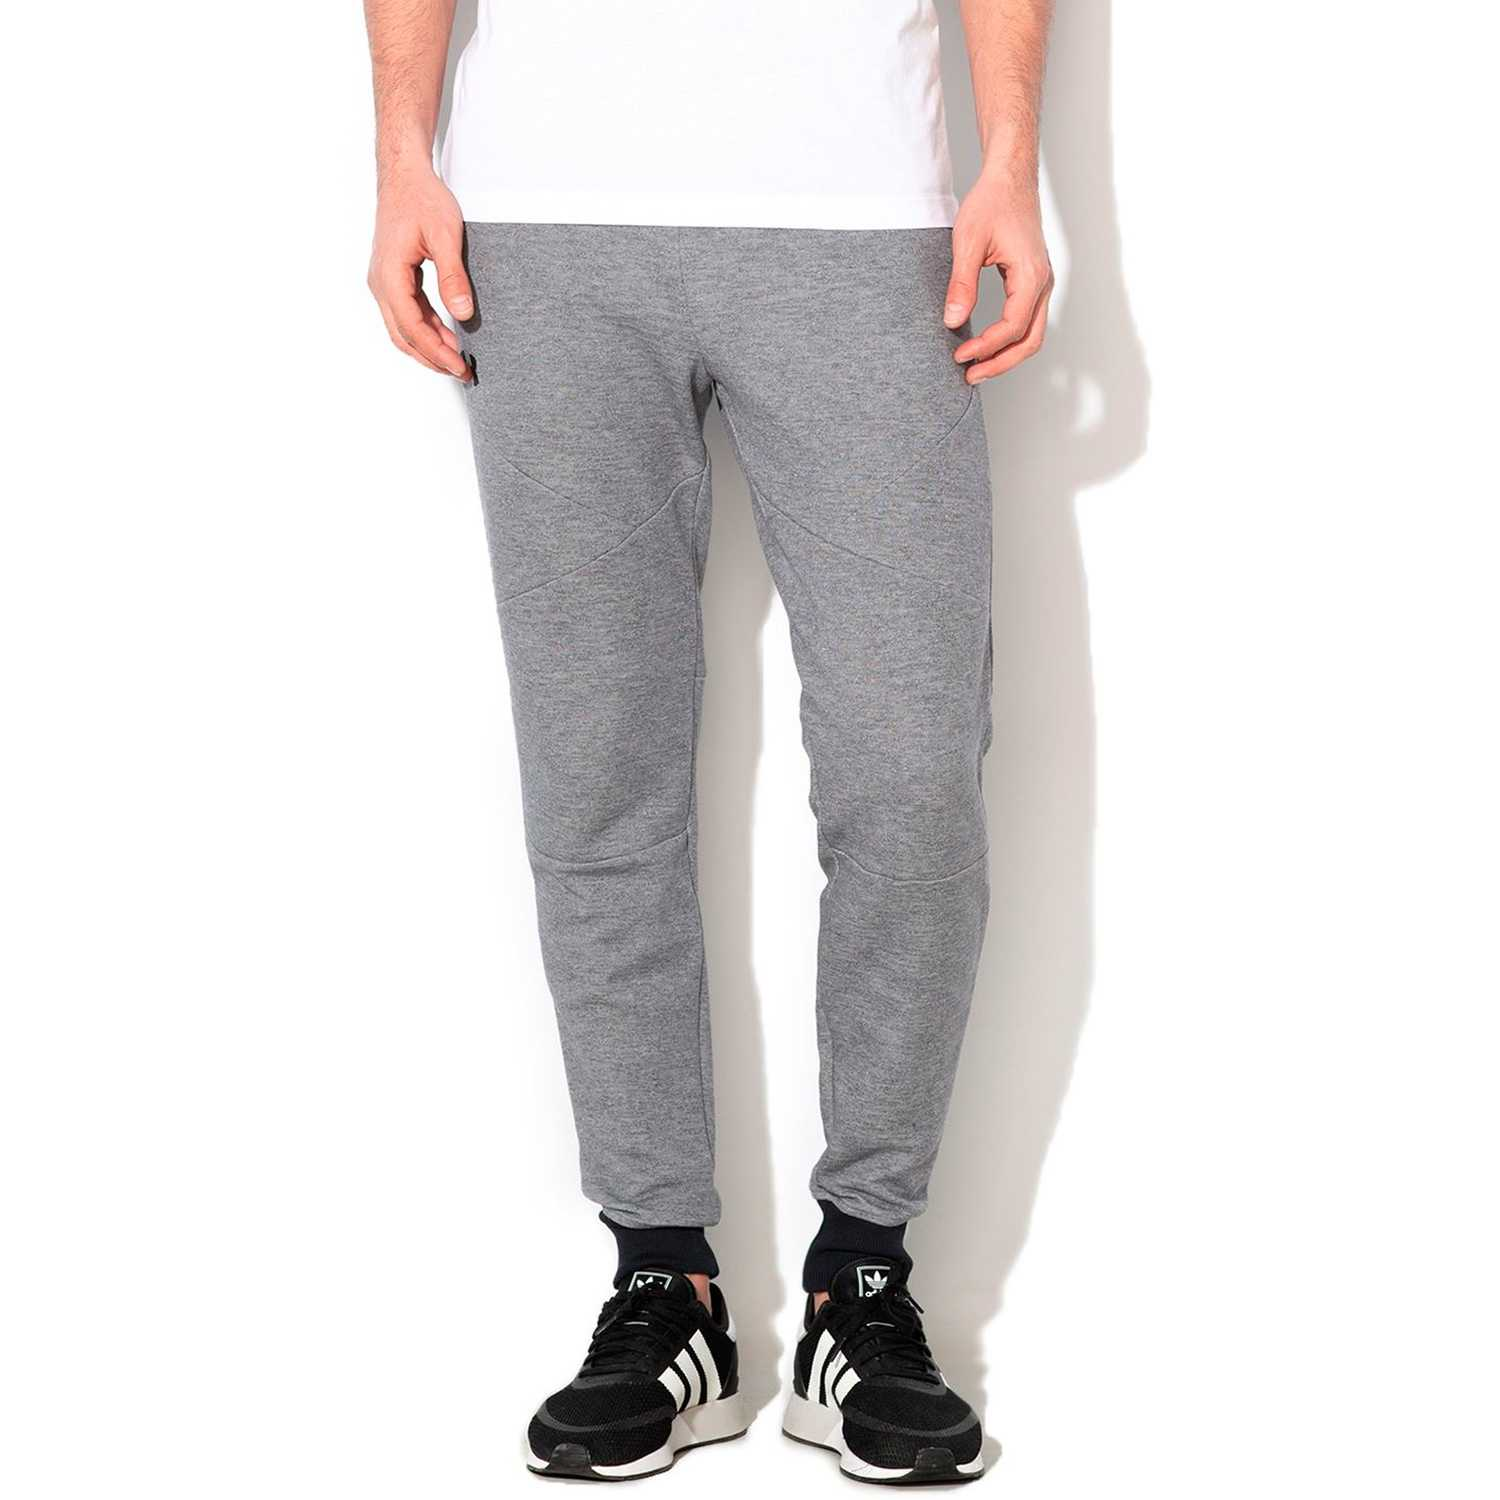 Under Armour unstoppable 2x knit jogger-gry Gris / negro Pantalones Deportivos